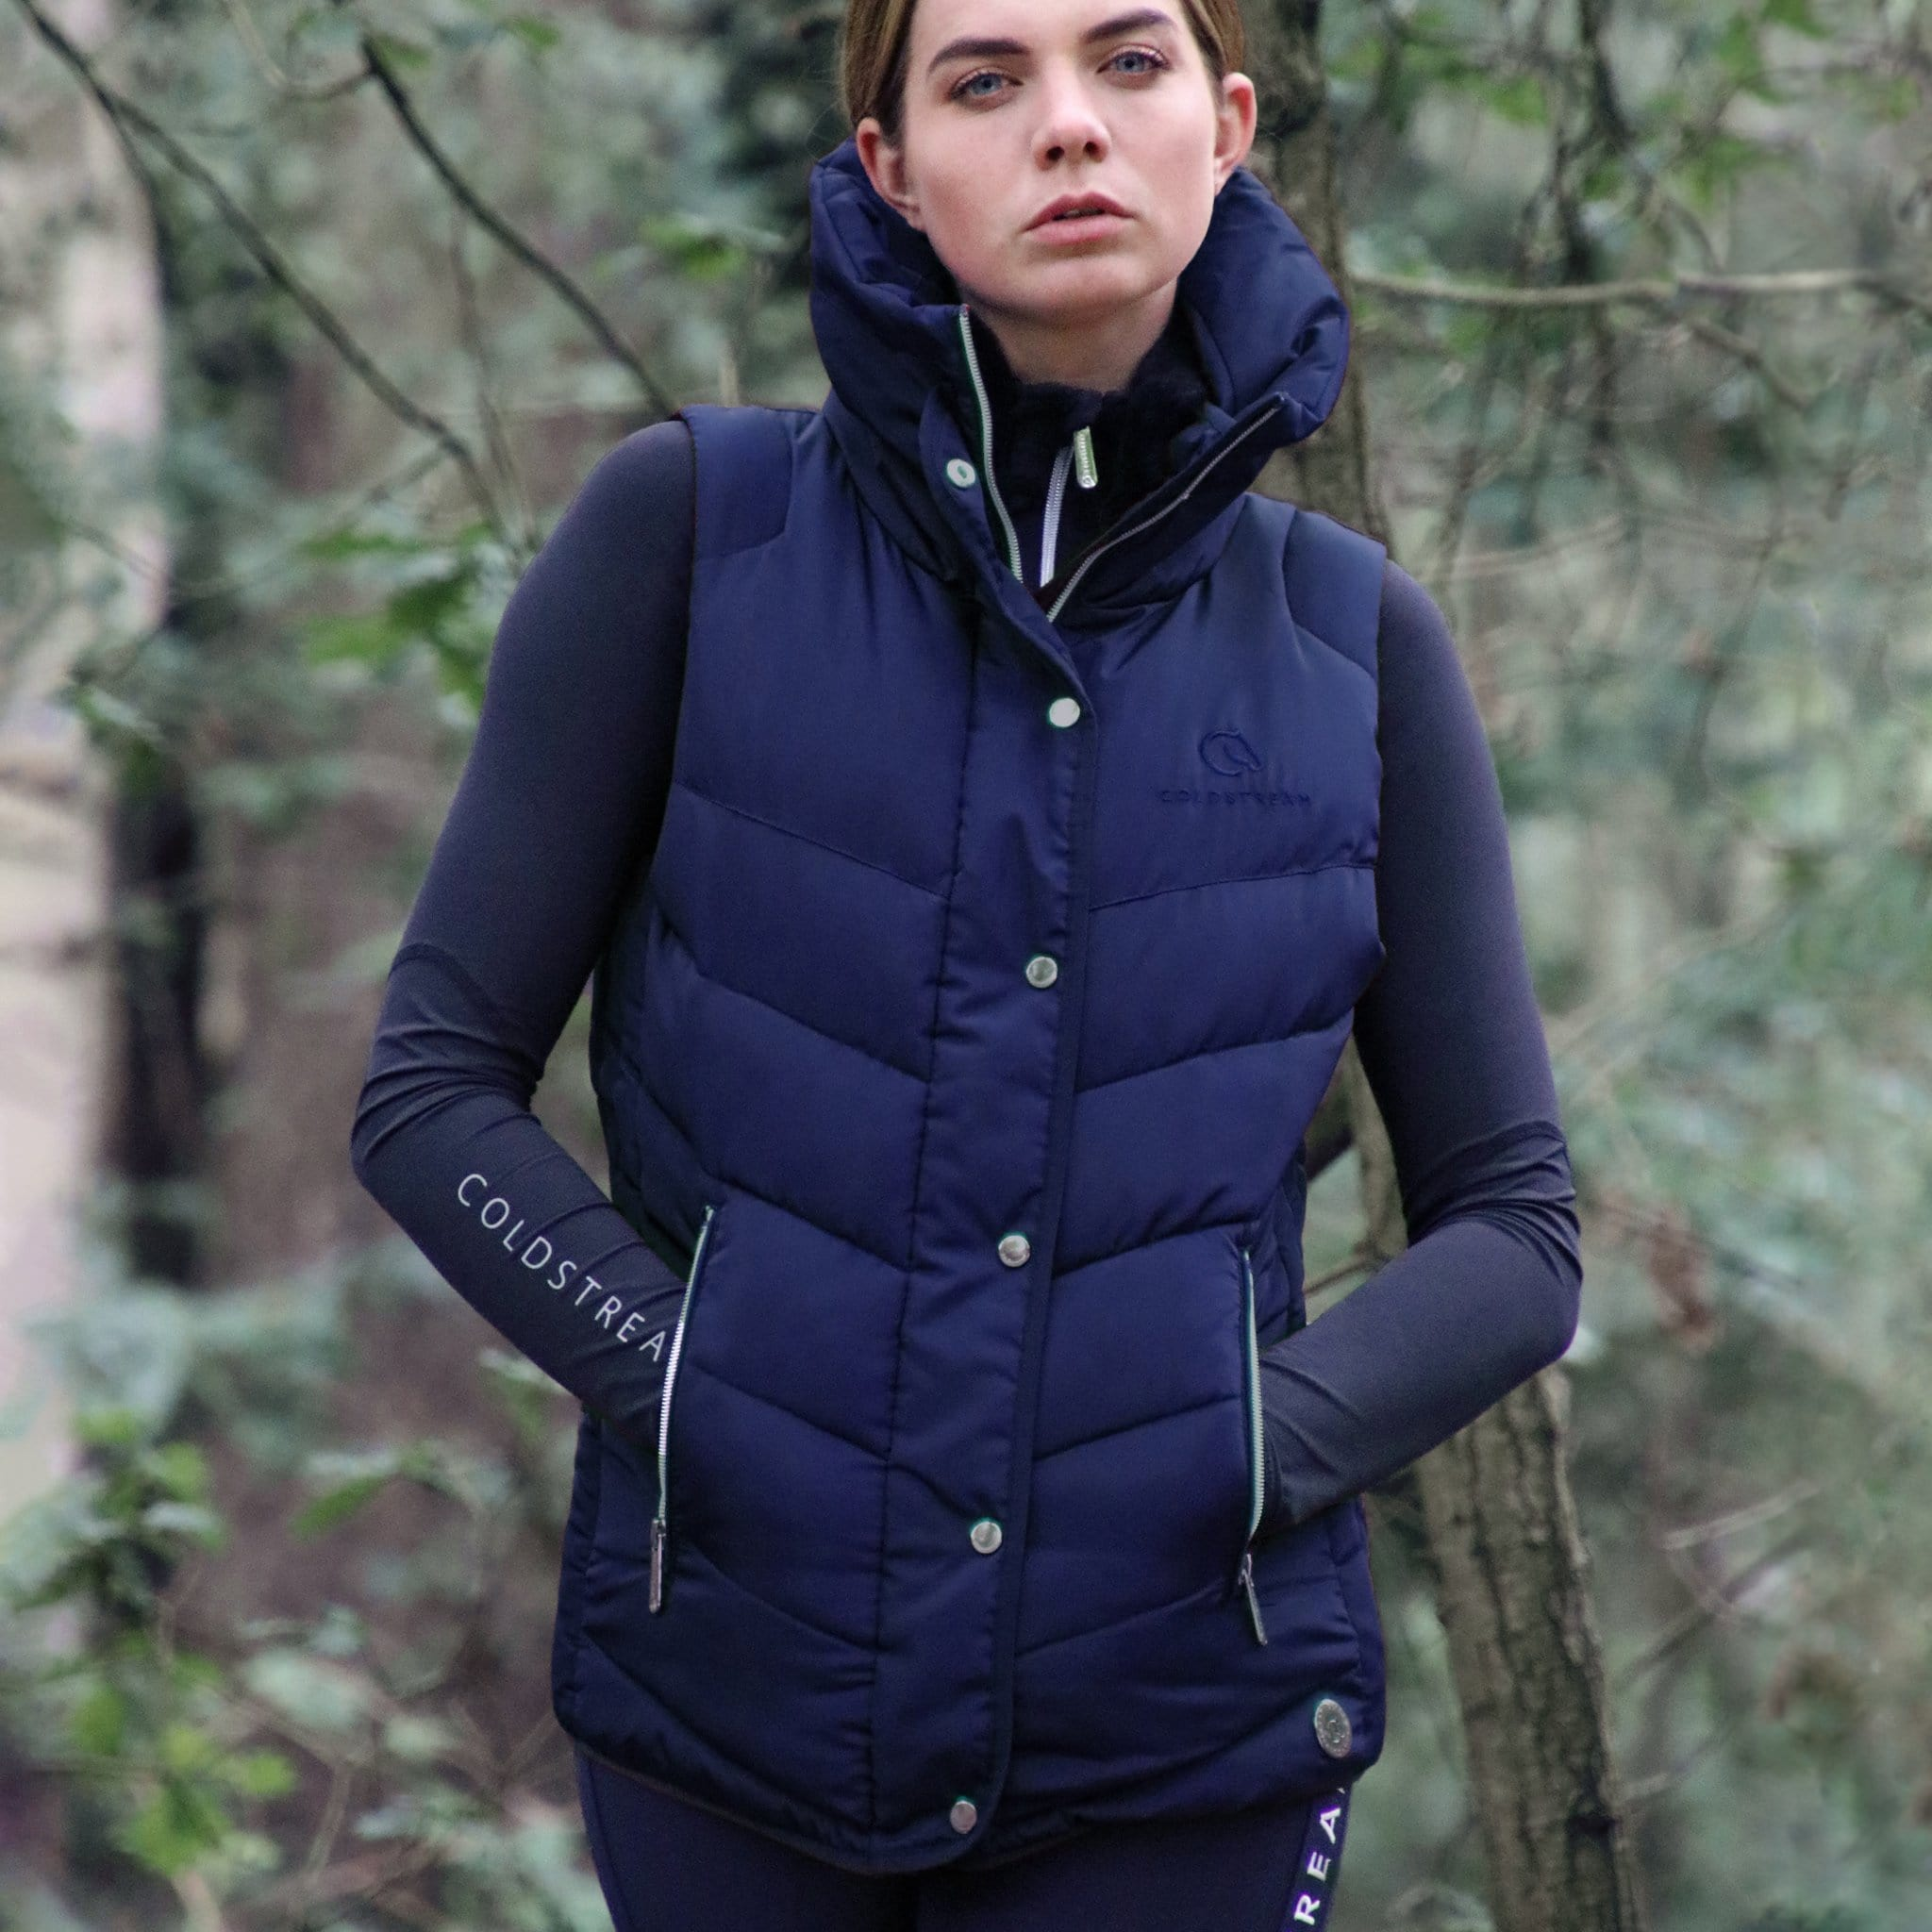 Coldstream Kimmerston Quilted Gilet 24132 Navy On Model Front View